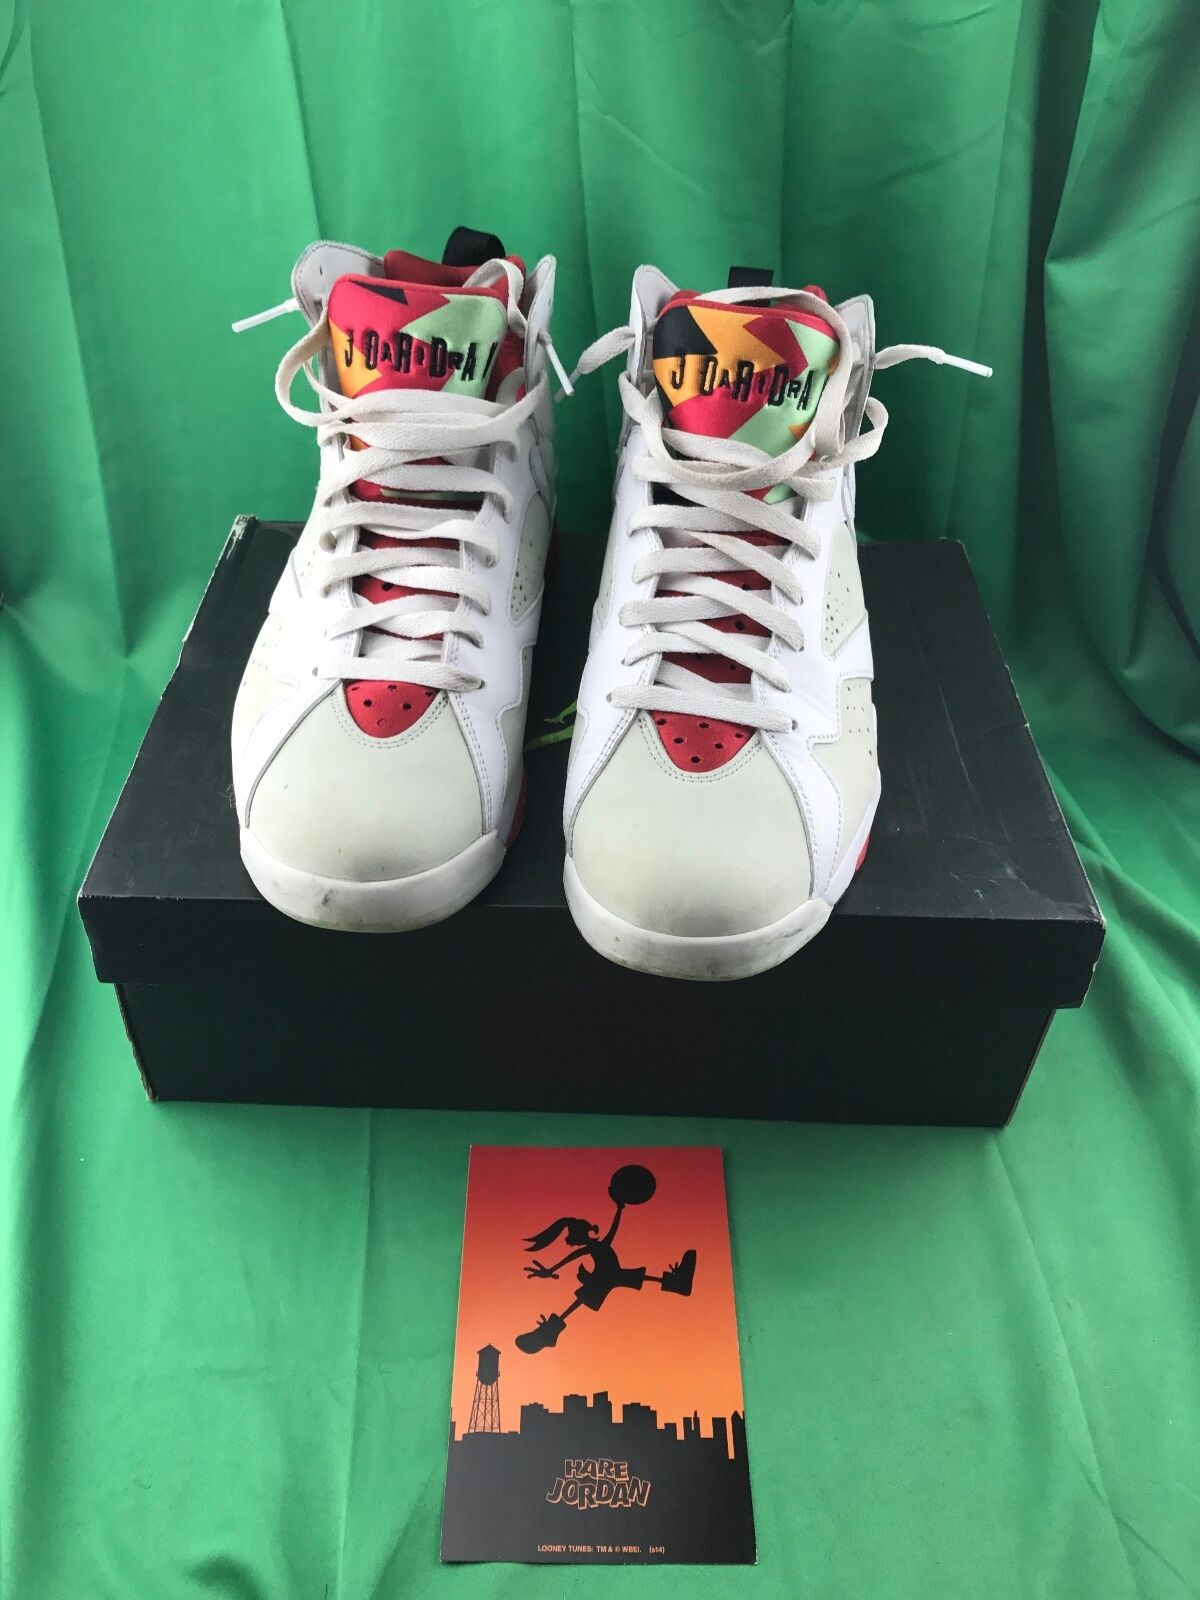 Nike Air Jordan 7 VII Retro Hare Comfortable The latest discount shoes for men and women